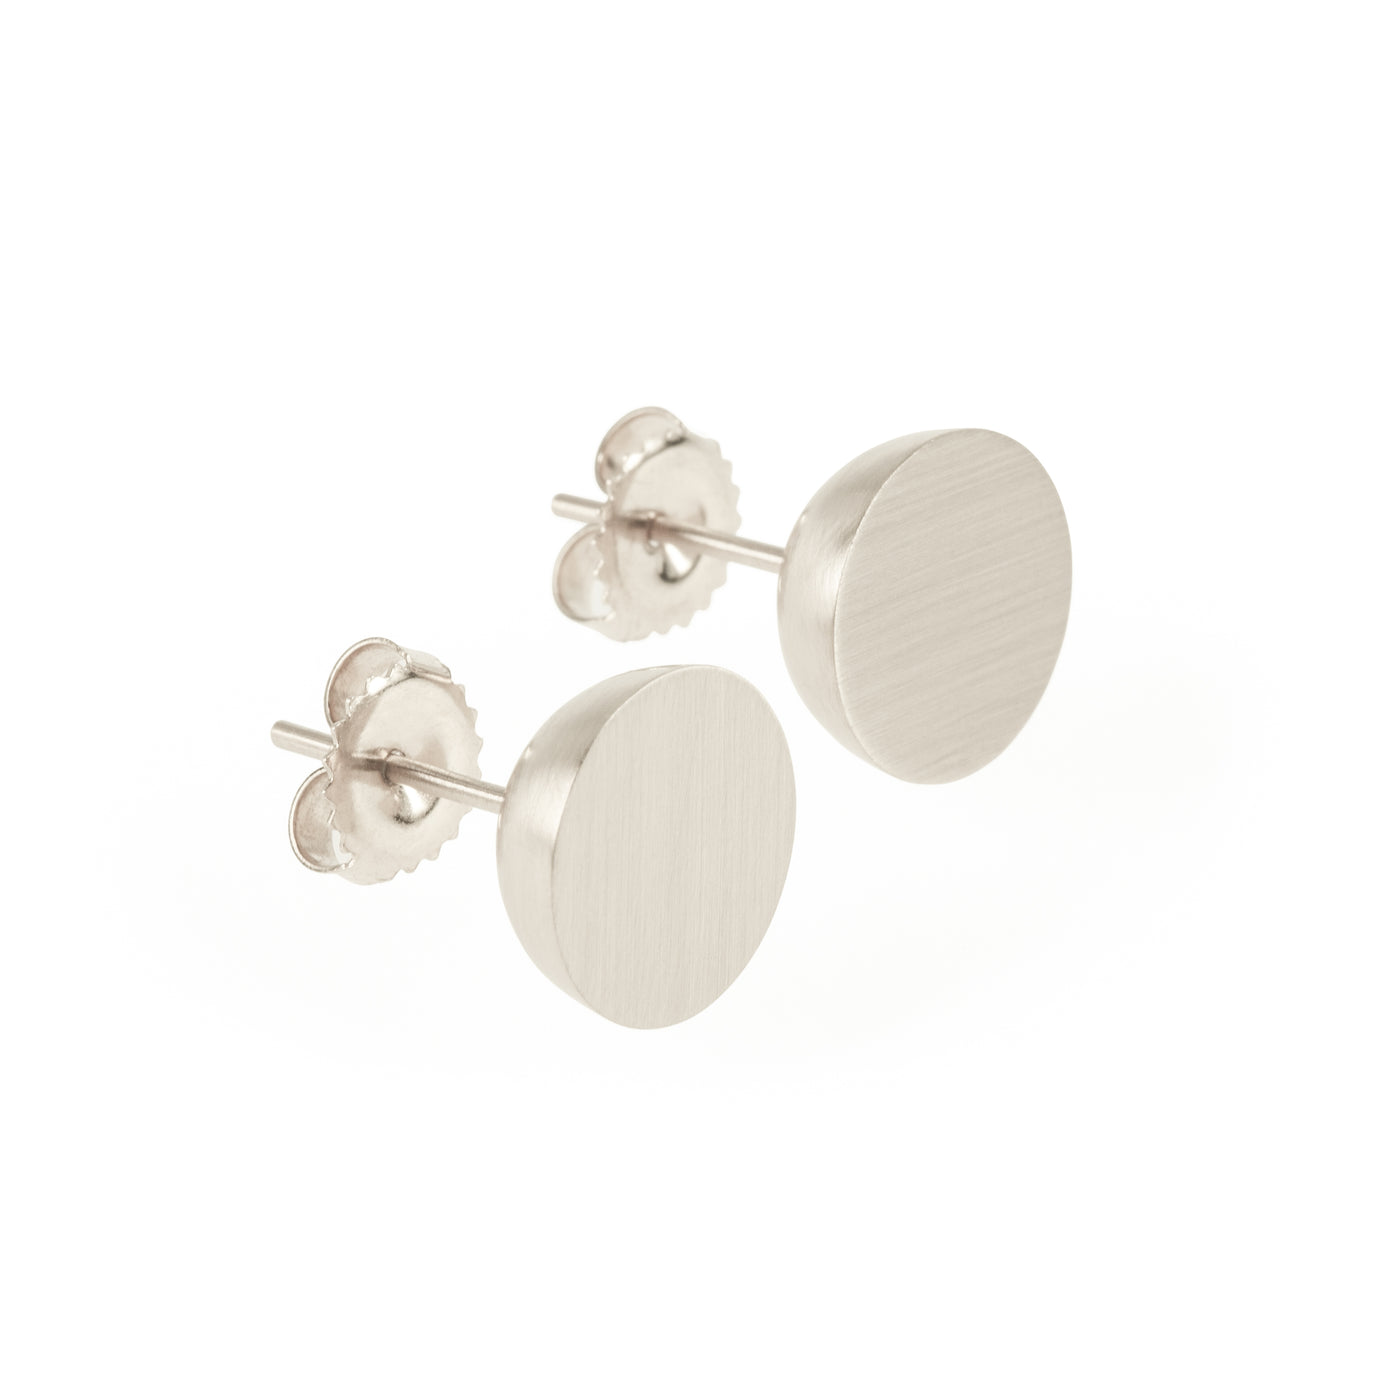 Ethical silver earrings. These minimalist 11mm Hemisphere Studs are handmade in Cape Town in recycled silver from e-waste.